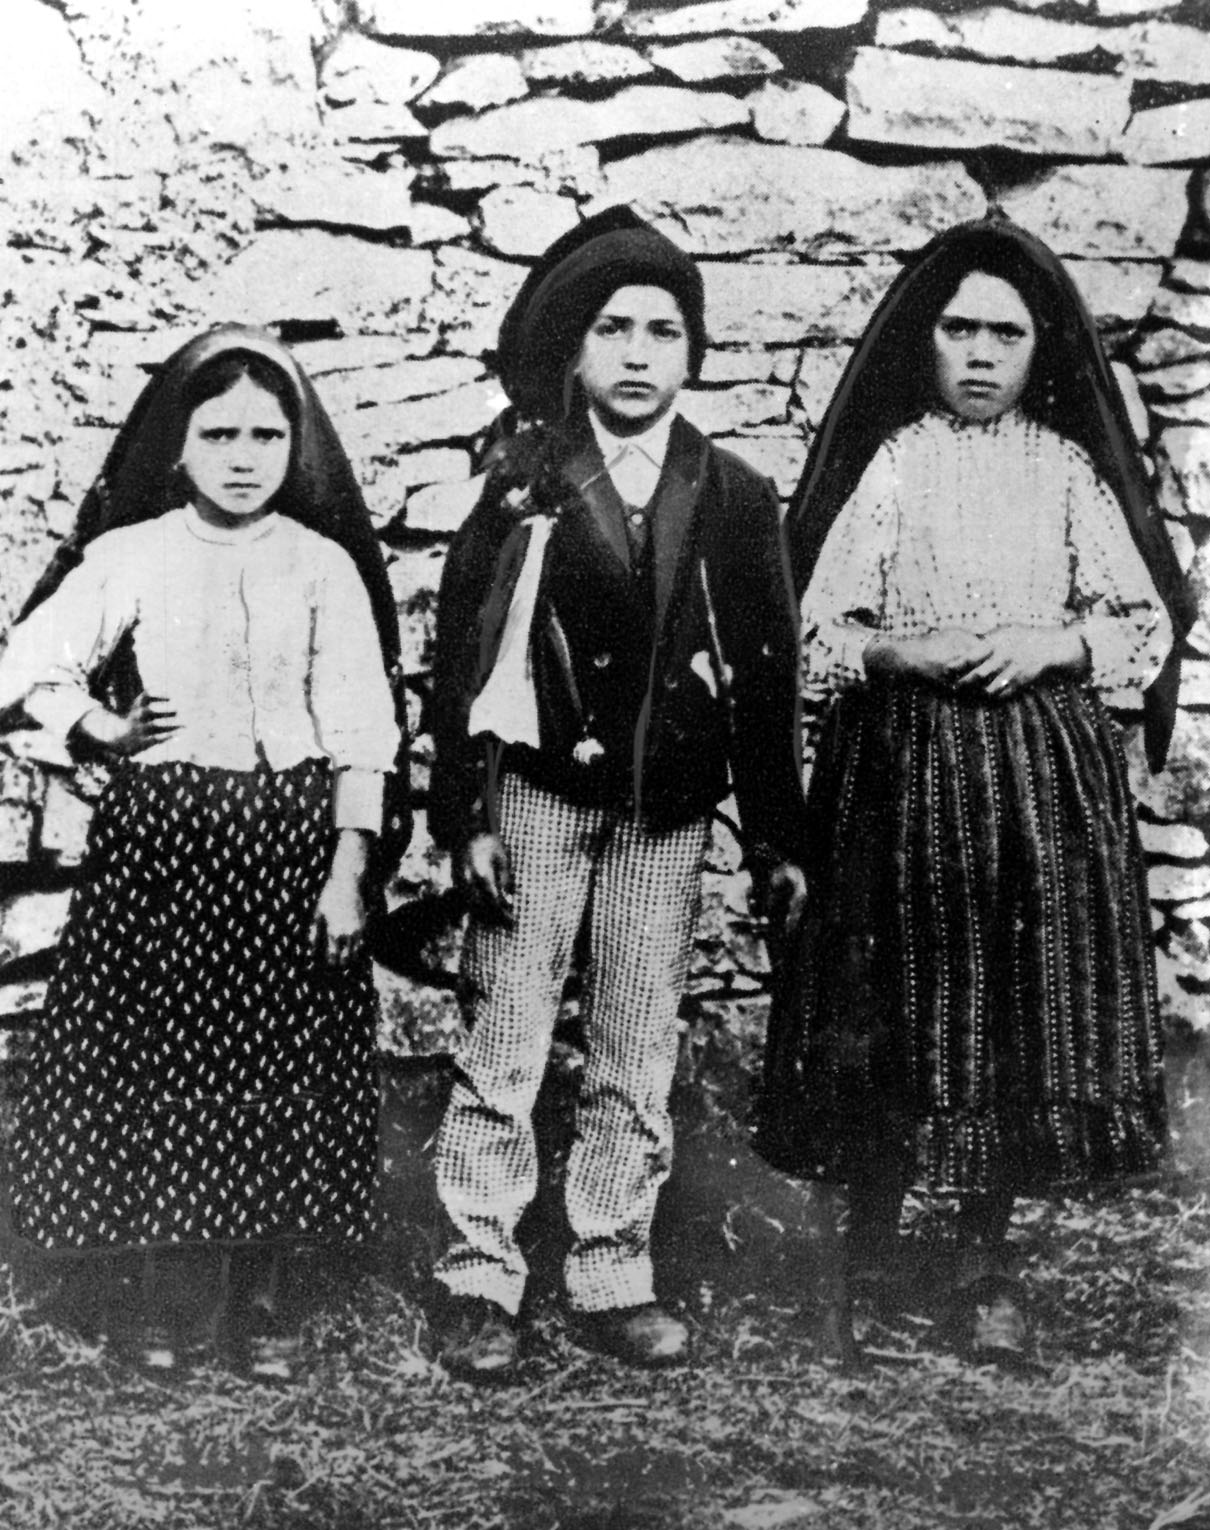 Jacinta and Francisco Marto are pictured with their cousin Lucia dos Santos (right) in a file photo taken around the time of the 1917 apparitions of Mary at Fatima, Portugal. (CNS file photo)